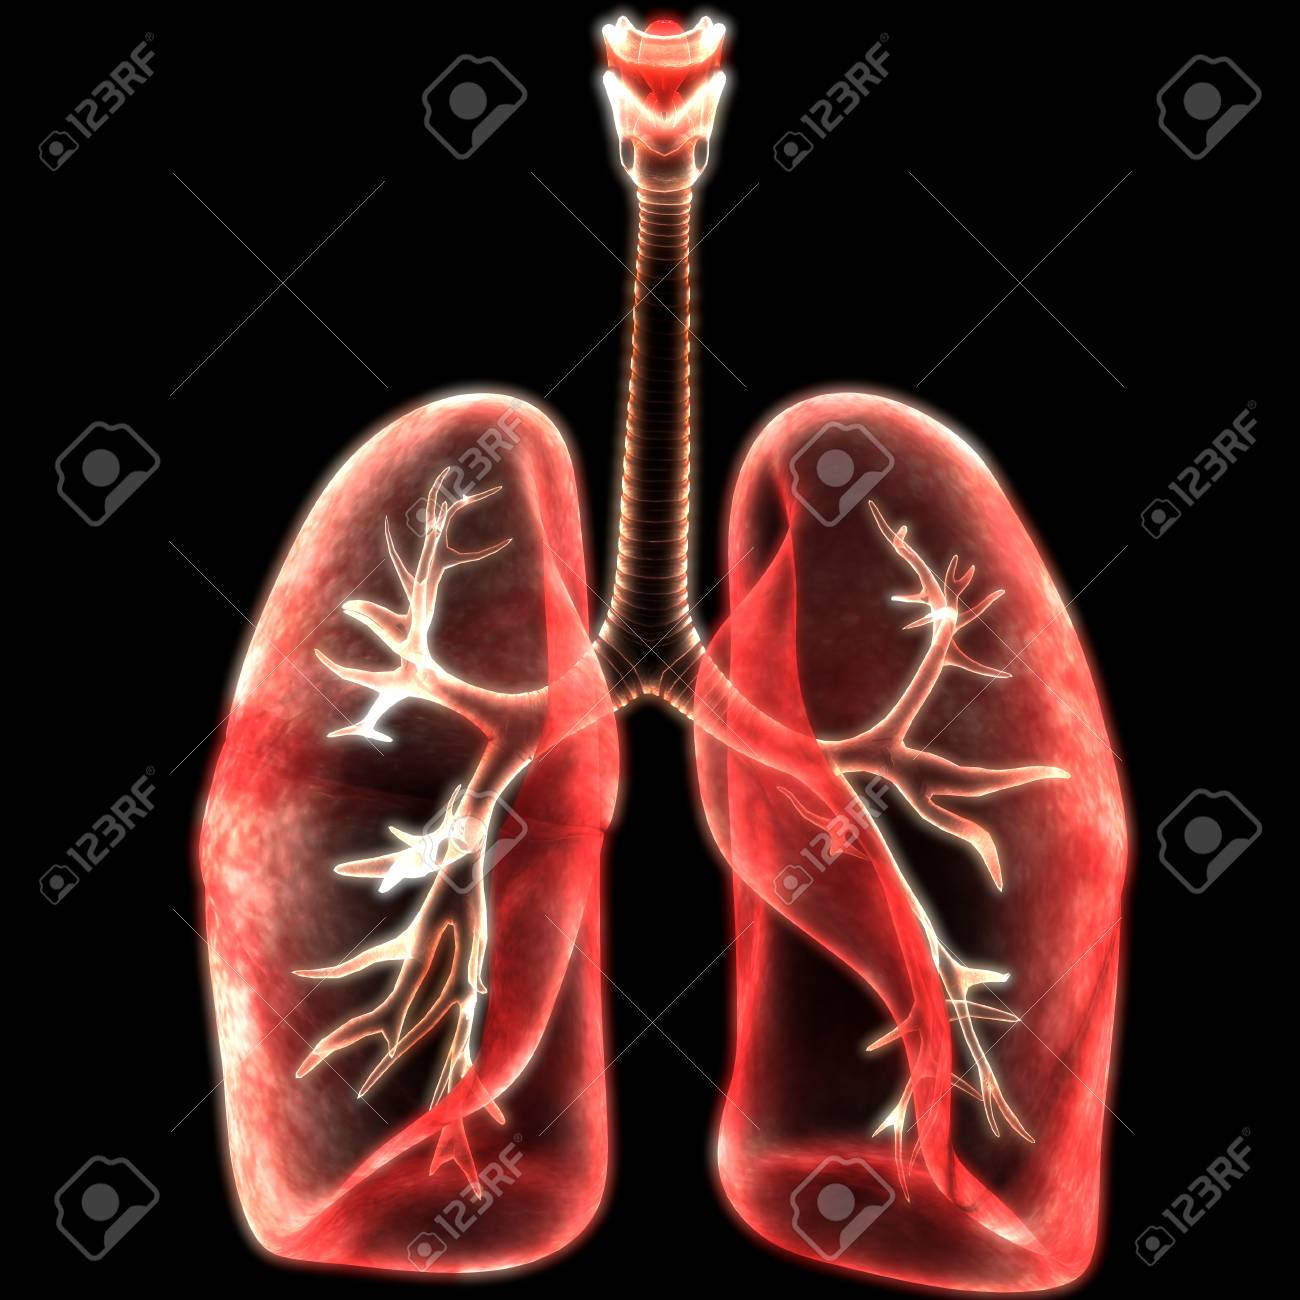 Human Body Organs (Lungs Anatomy) Stock Photo, Picture And Royalty ...